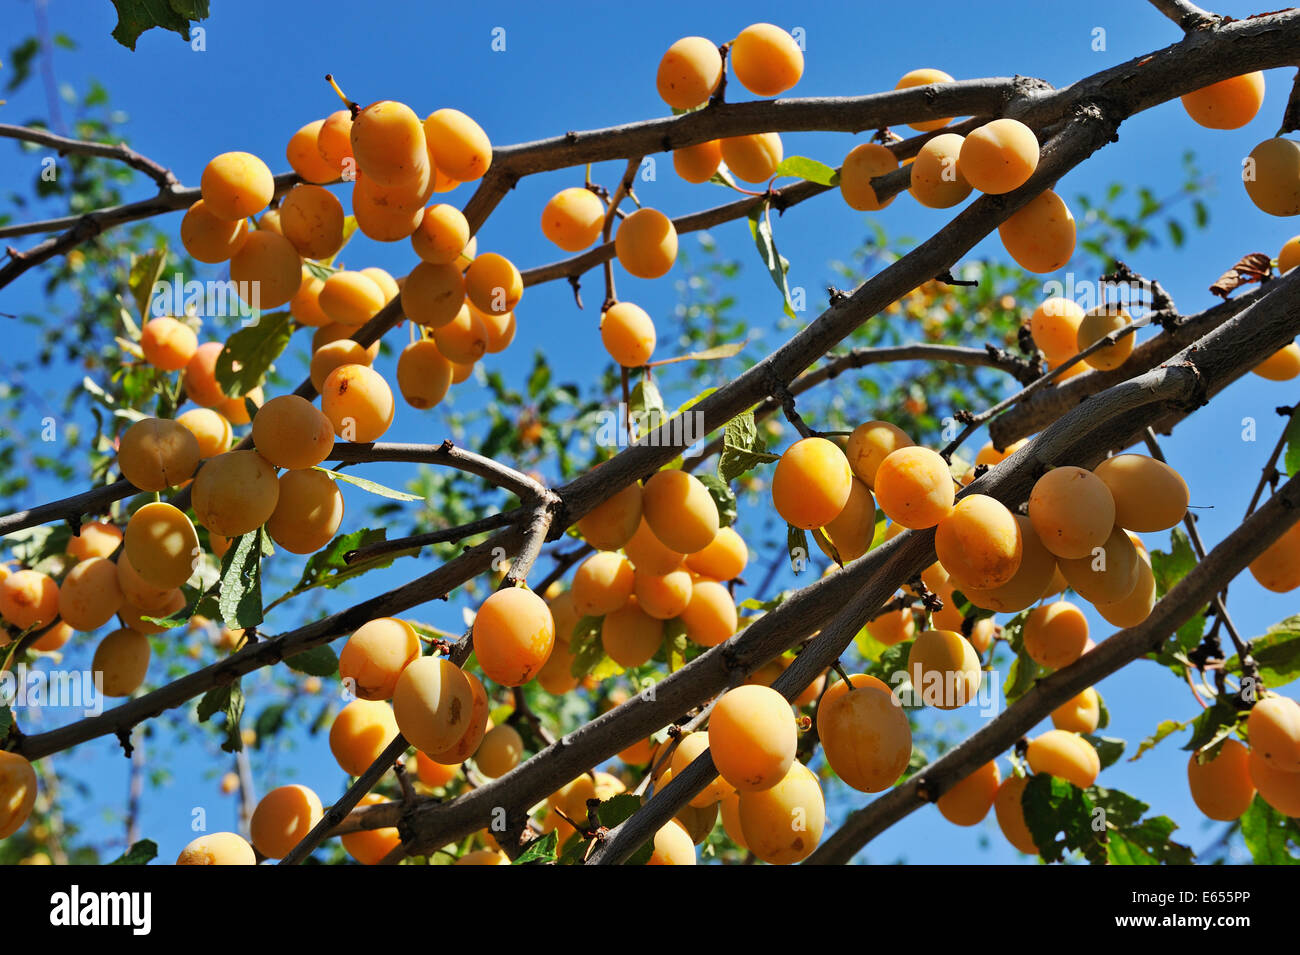 Plums on tree branches in summer - Stock Image